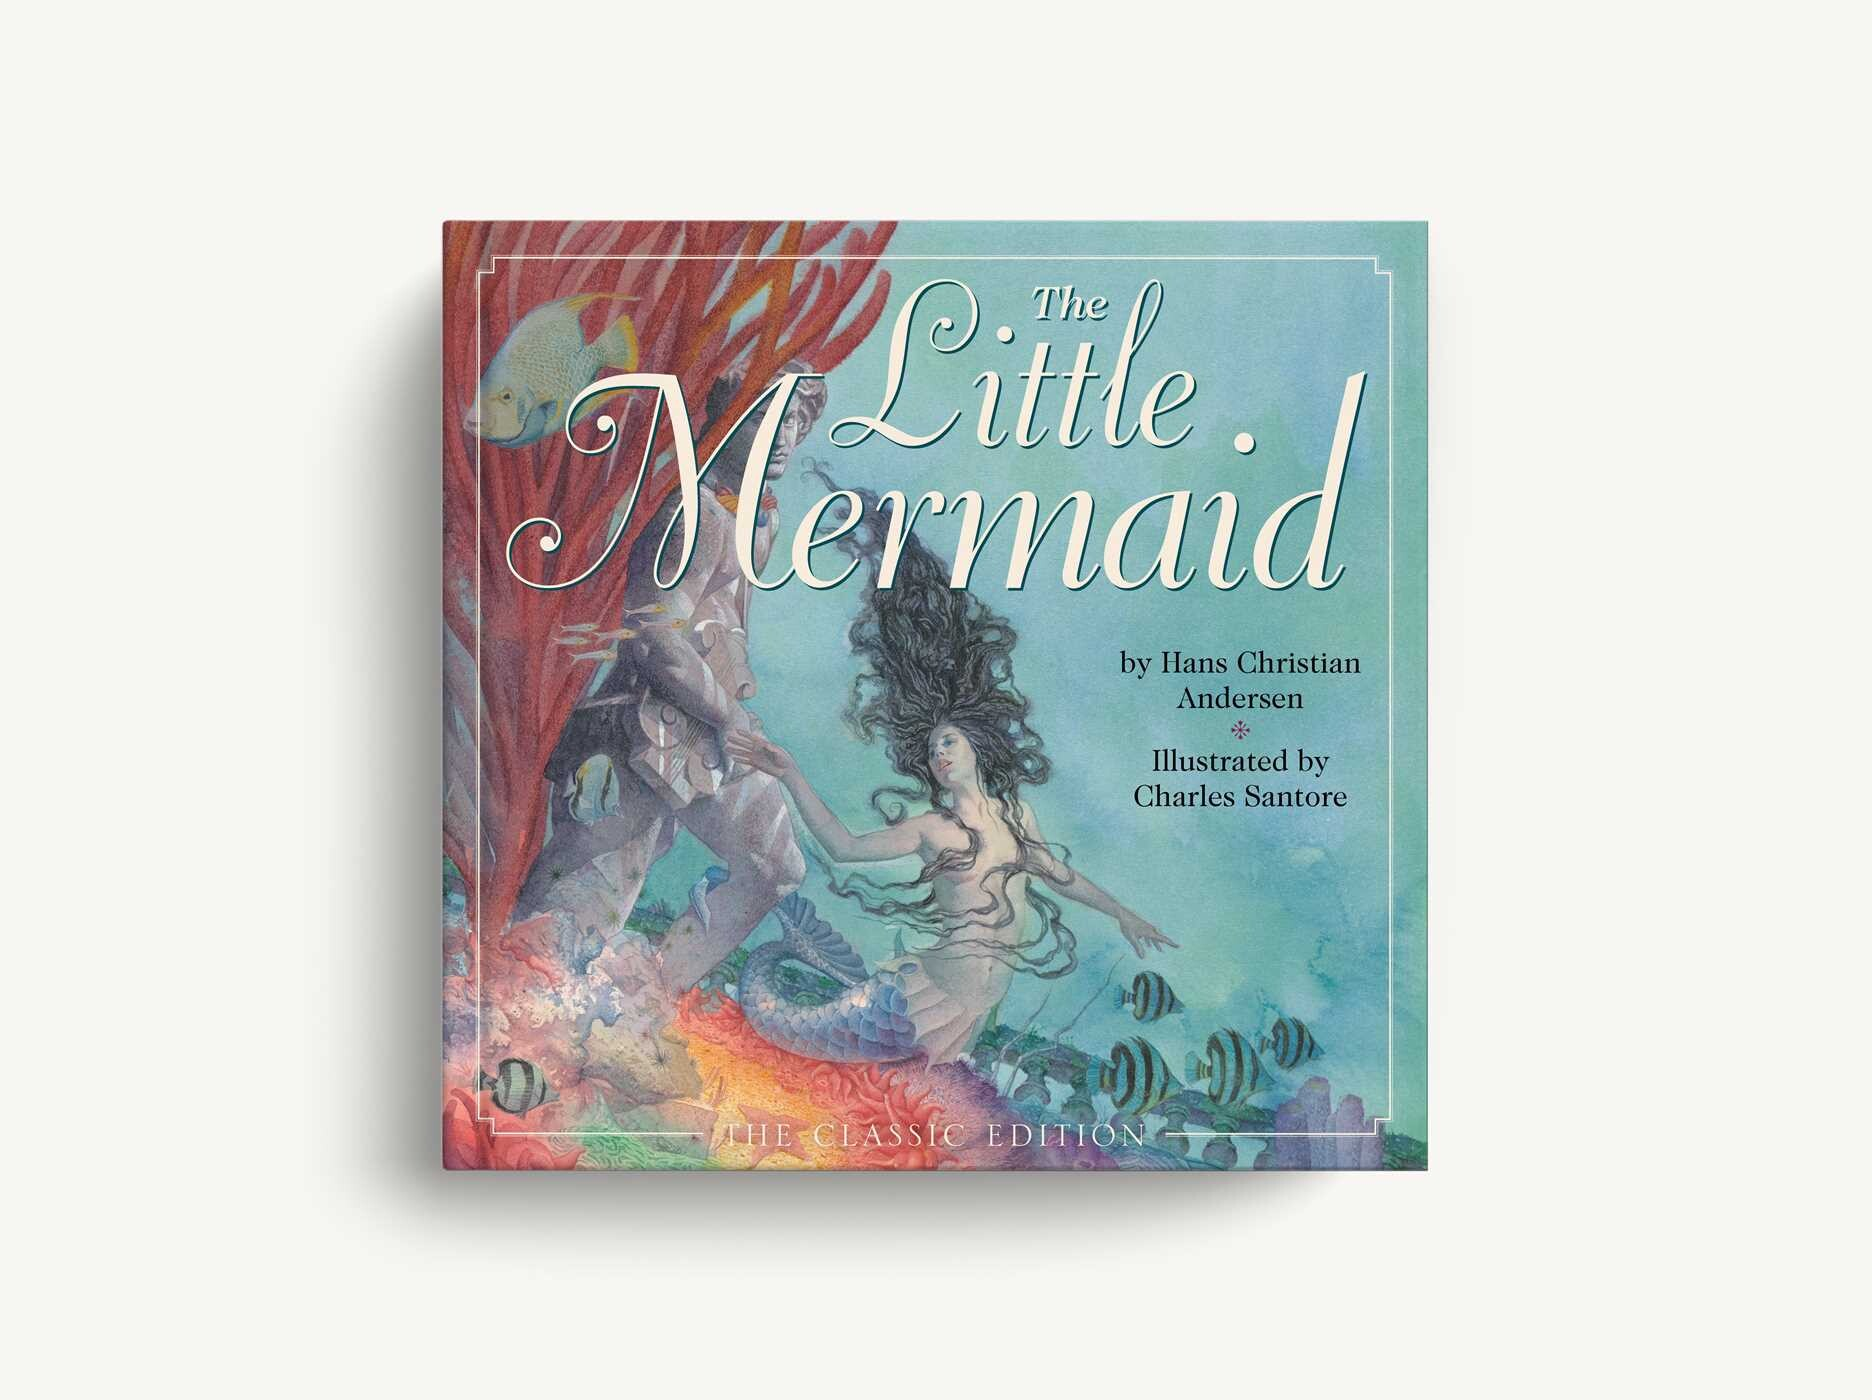 The little mermaid 9781604333770.in01